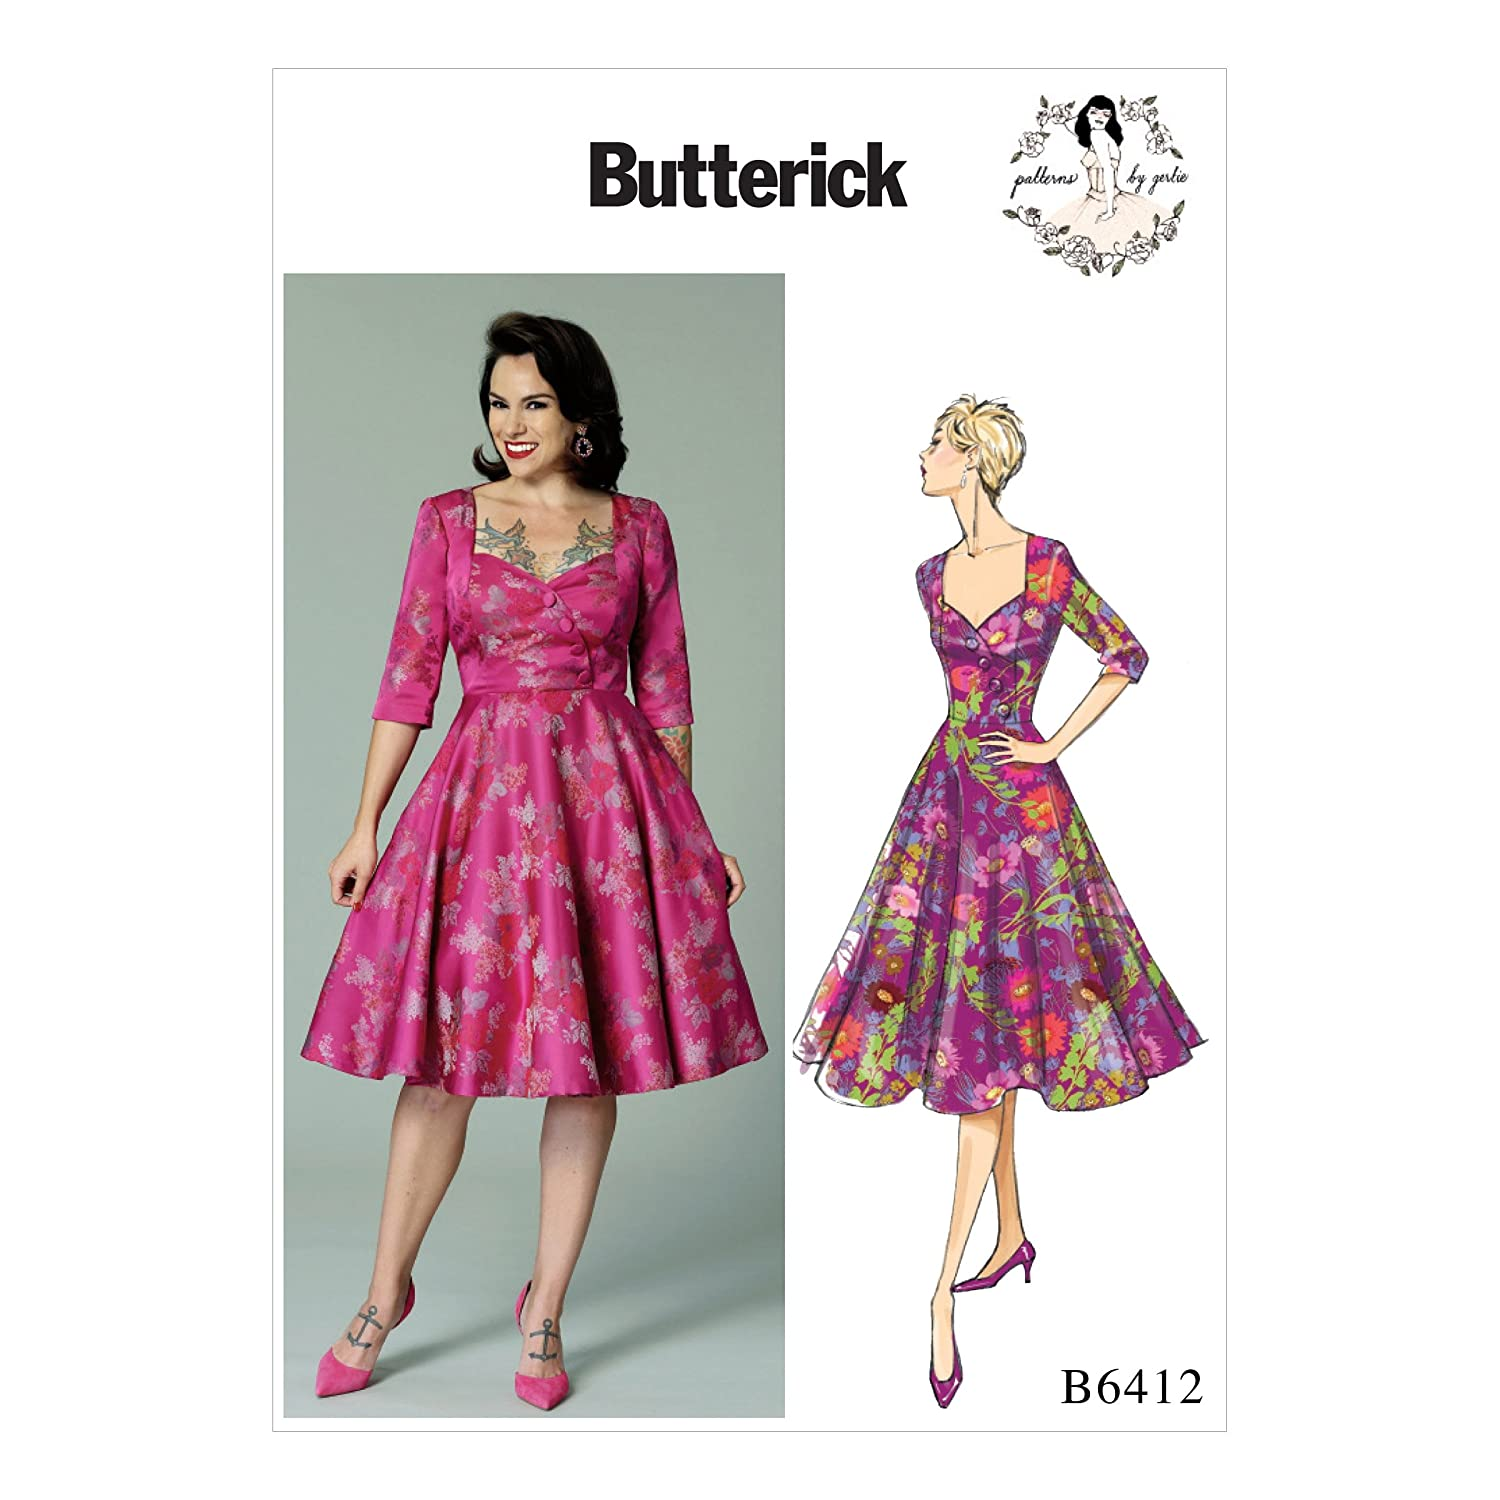 1950s Sewing Patterns | Swing and Wiggle Dresses, Skirts Butterick B6412 A5 Misses Sweetheart-Neckline Full-Skirted Dress Pattern by Gertie With Button Yoke Size 6-8-10-12-14 $13.41 AT vintagedancer.com